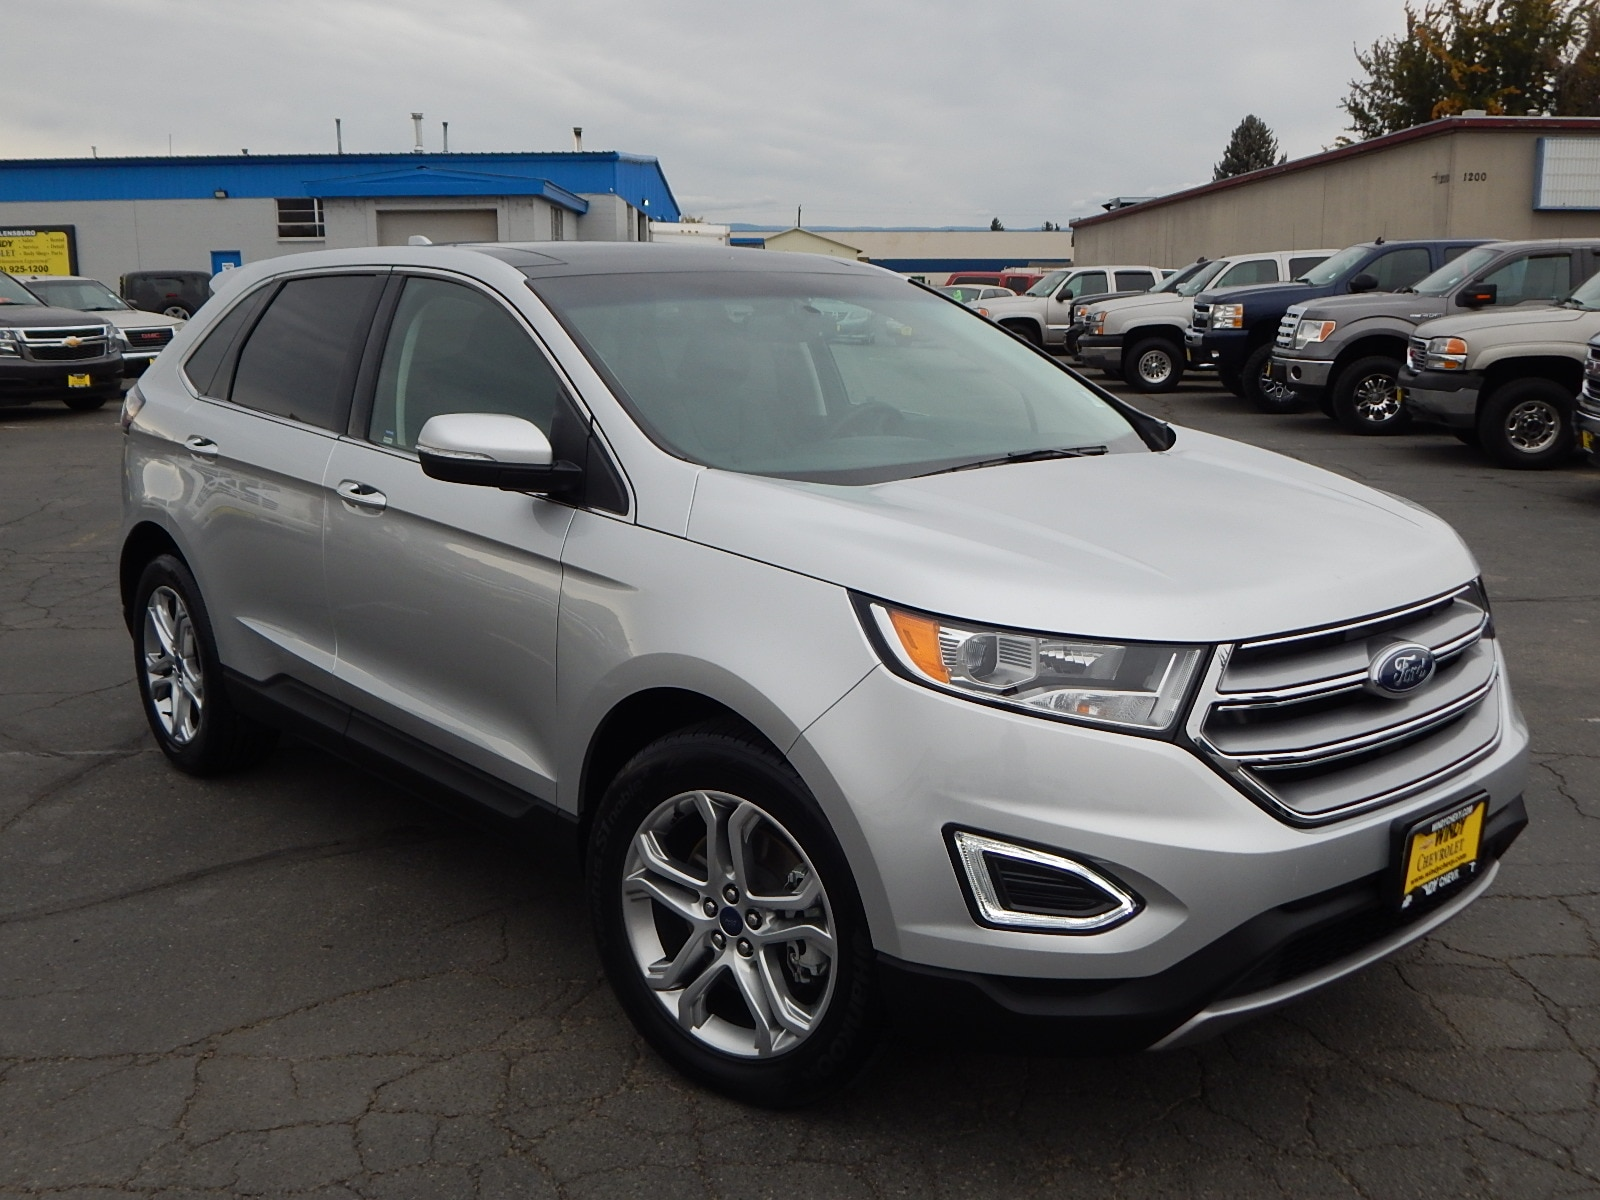 2017 Ford Edge Titanium We offer financing for just about anyone Good Credit Bad Credit REPO B